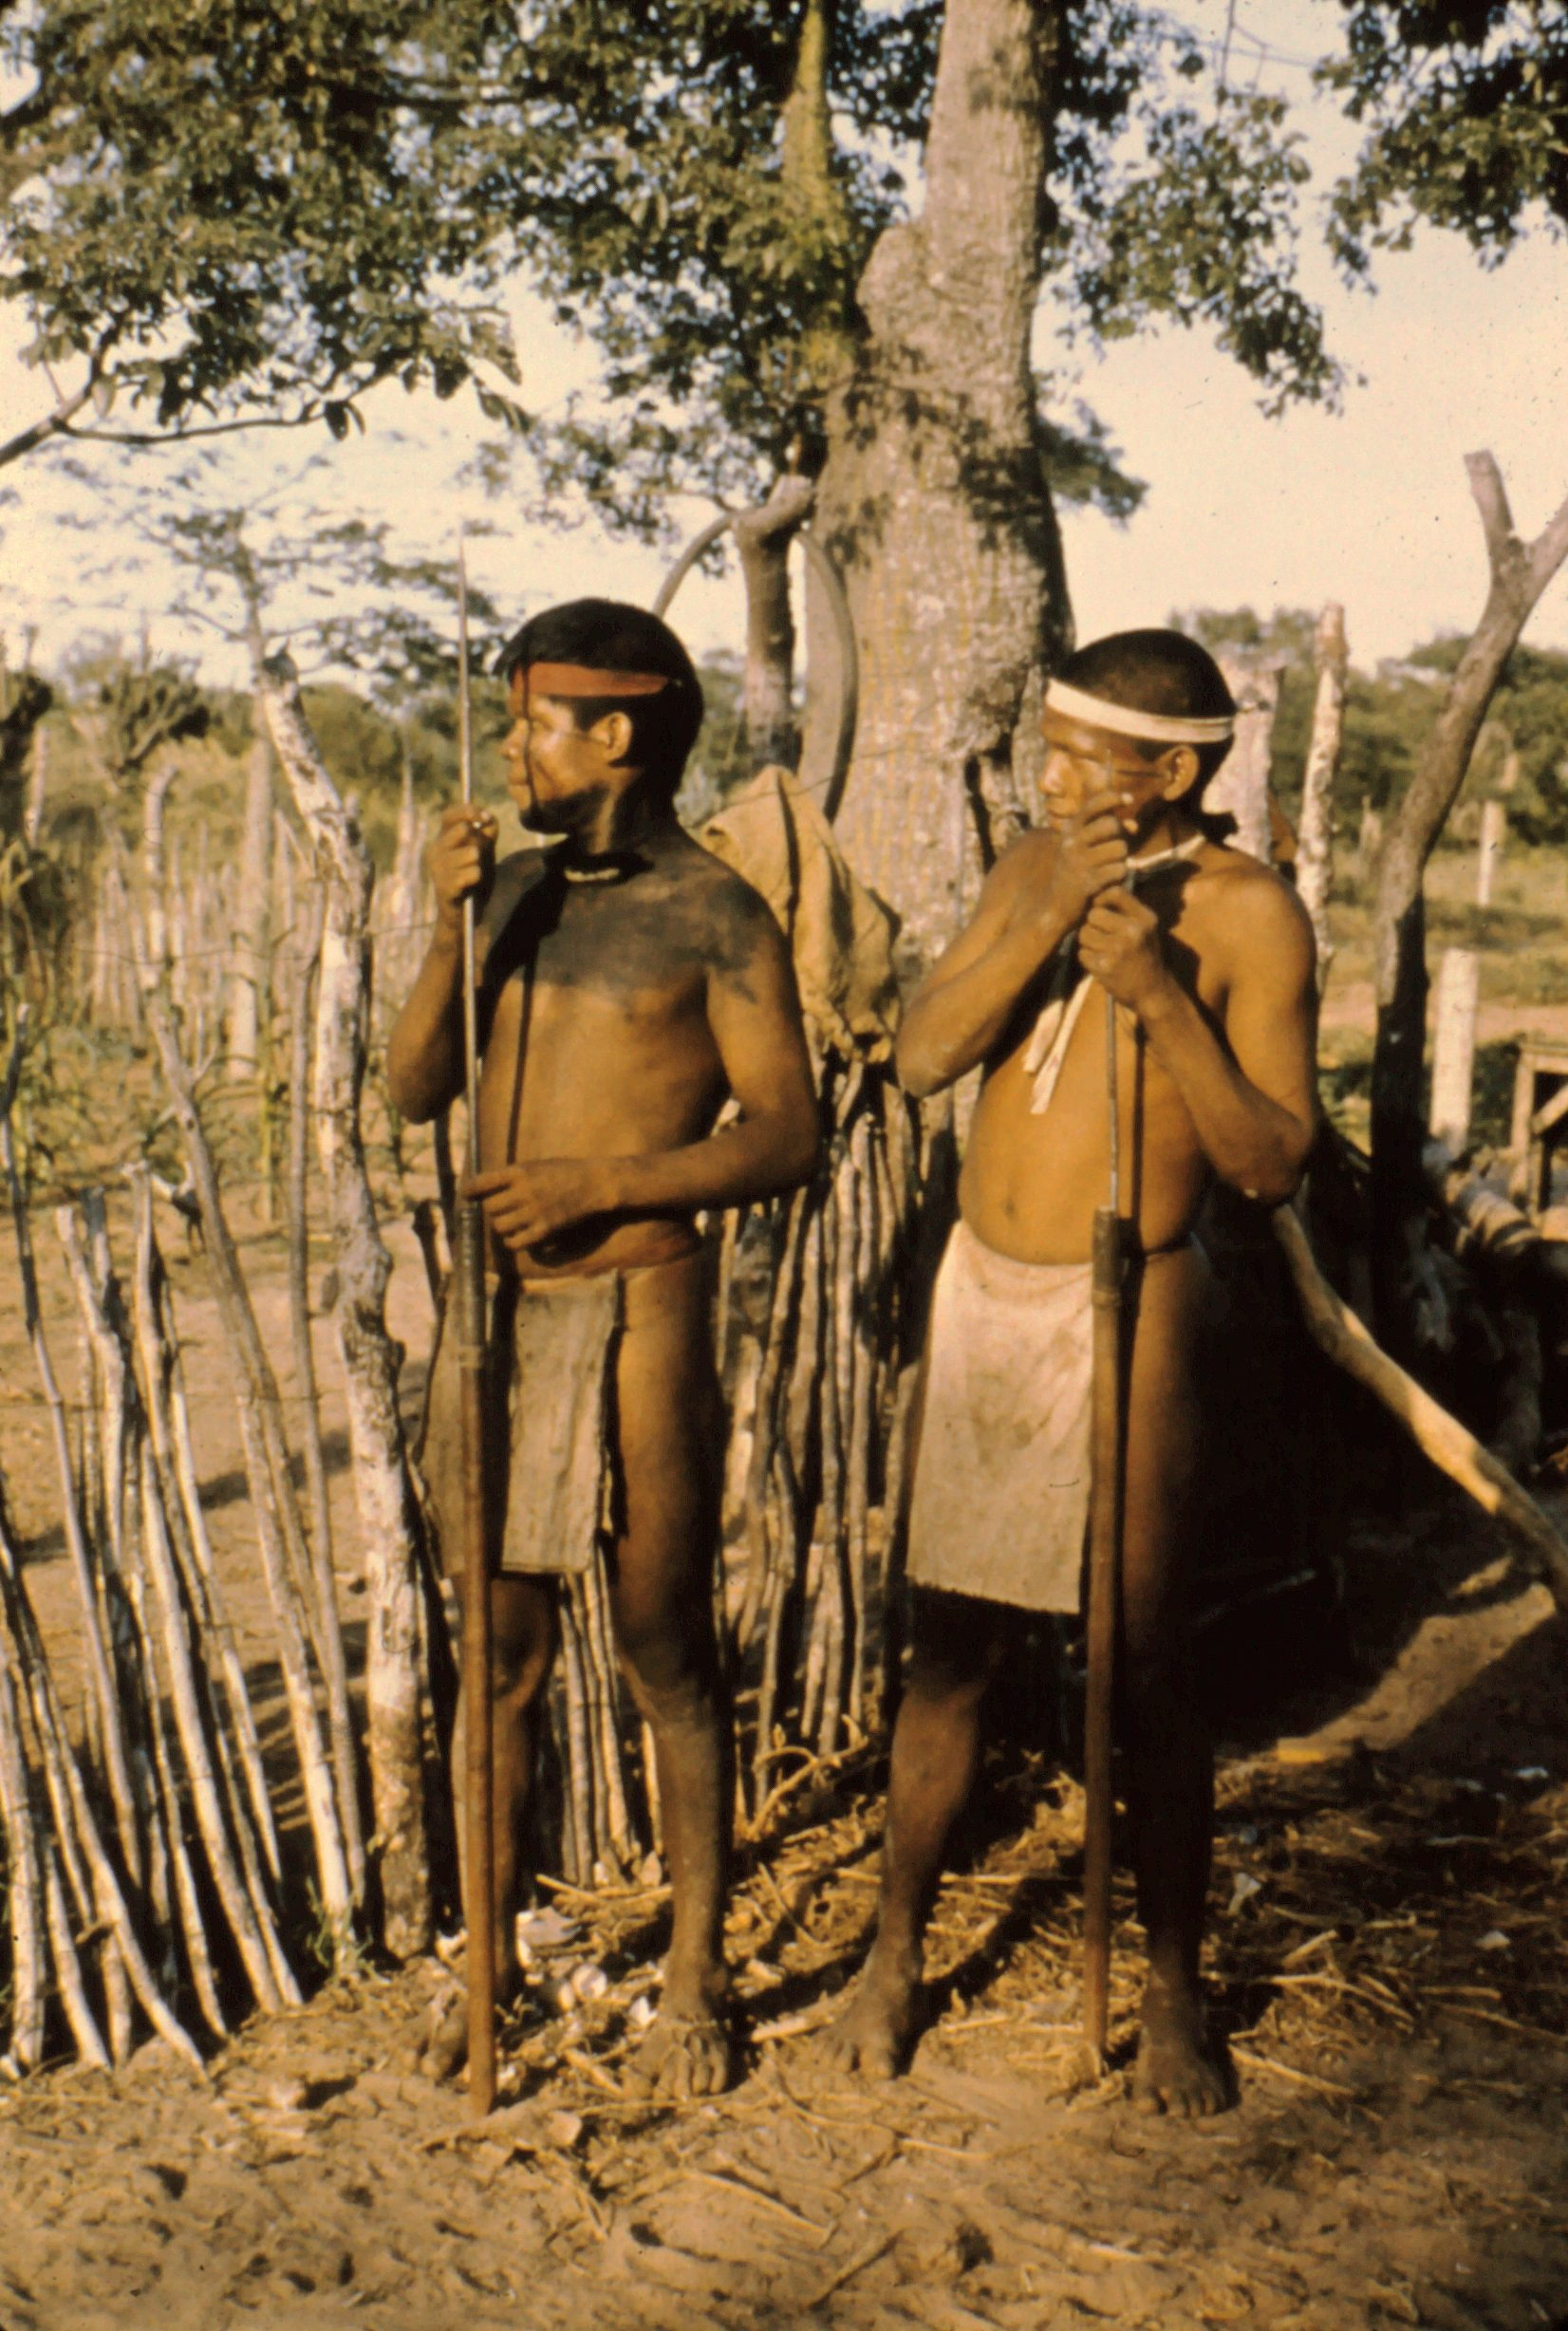 Ayoré men - headbands, body painting, loincothes, hair necklaces, tapir skin sandals, spears.